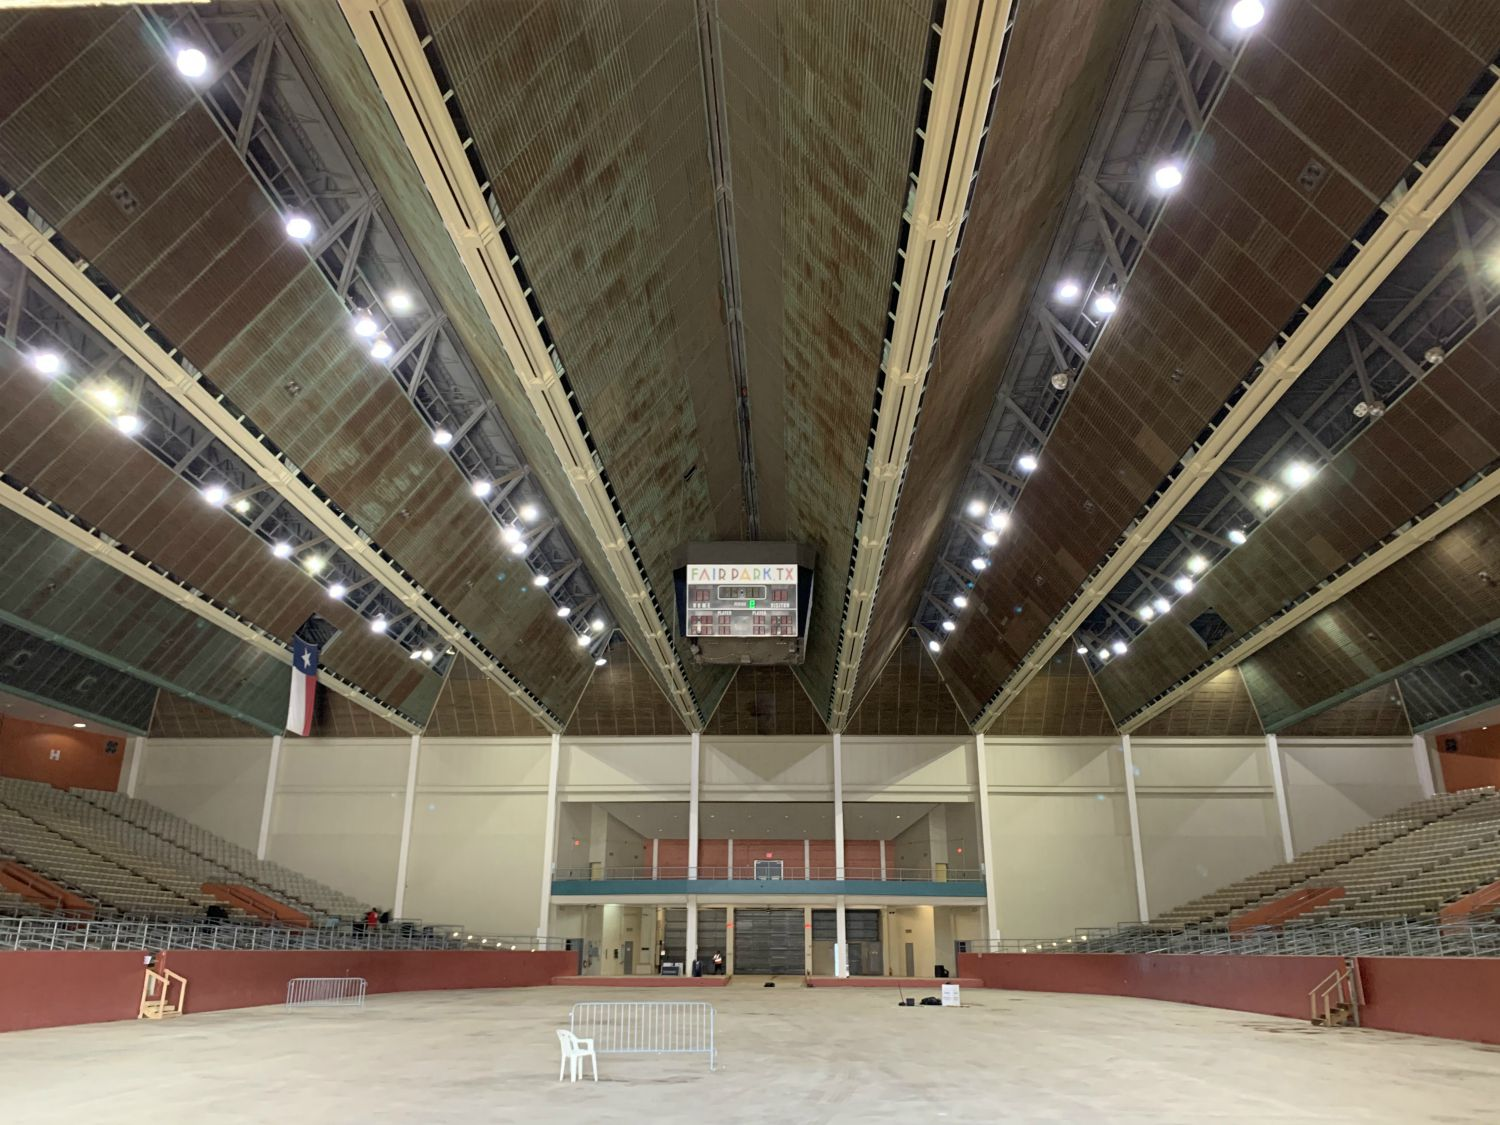 Last week I walked right into the Fair Park Coliseum, which hasn't looked this good in years.